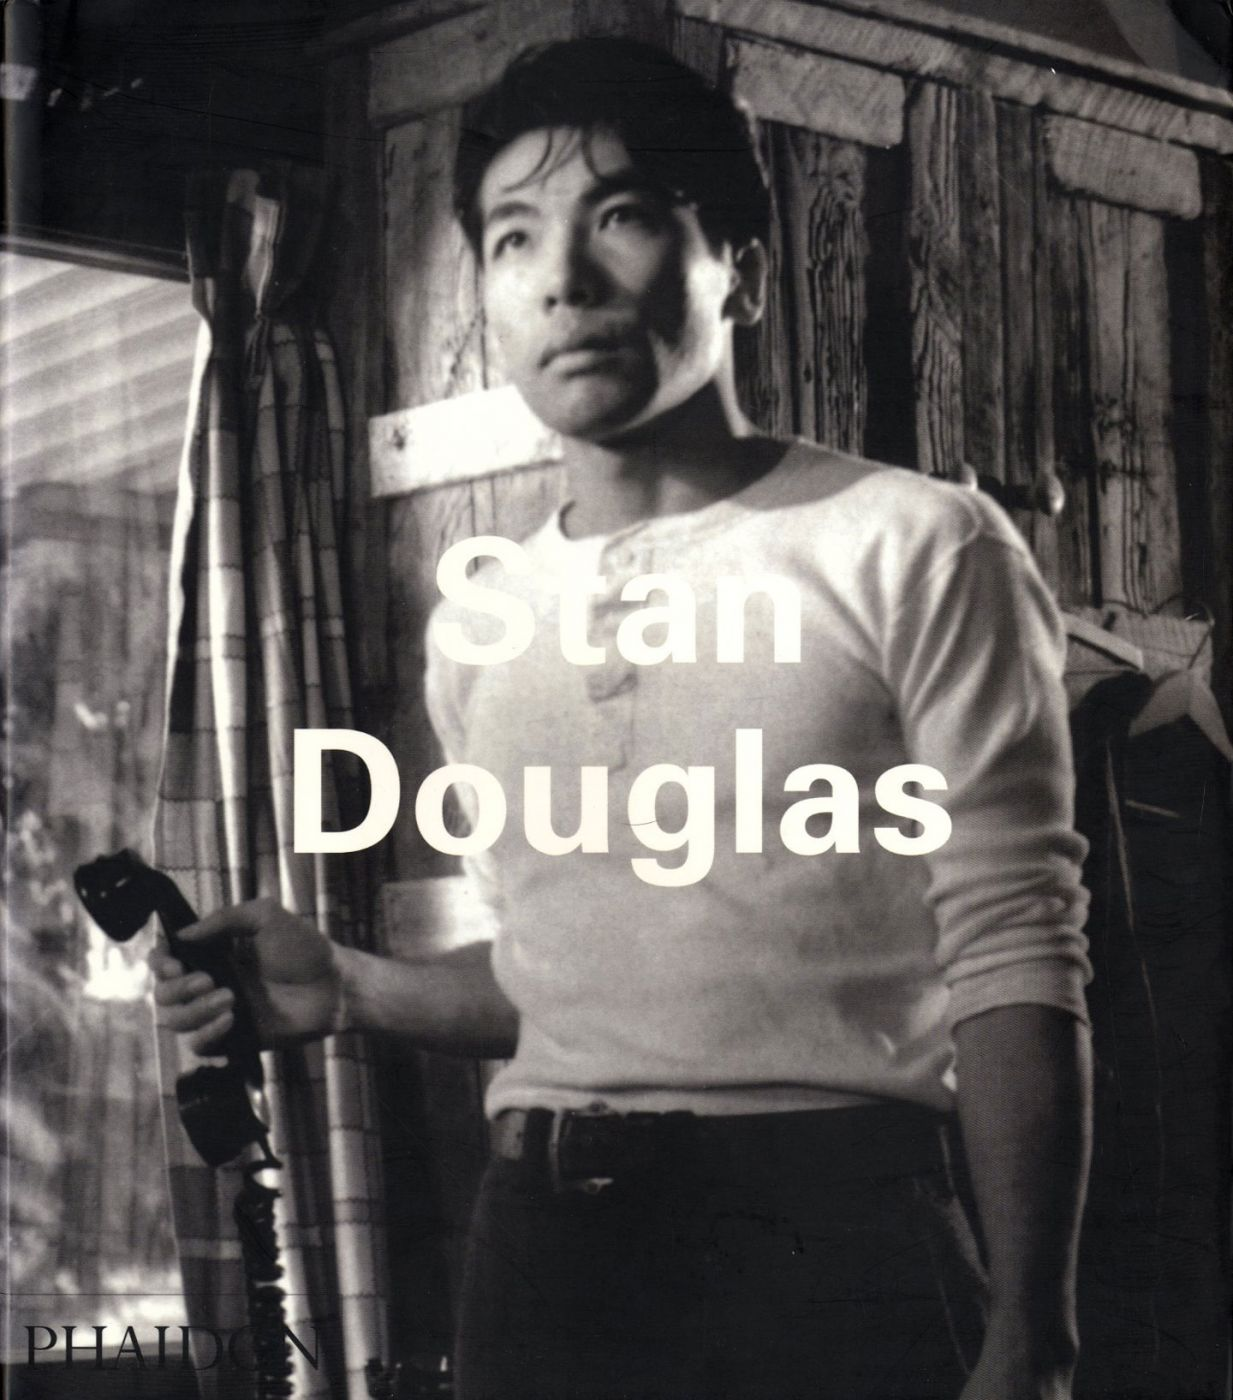 Stan Douglas (Phaidon Contemporary Series)